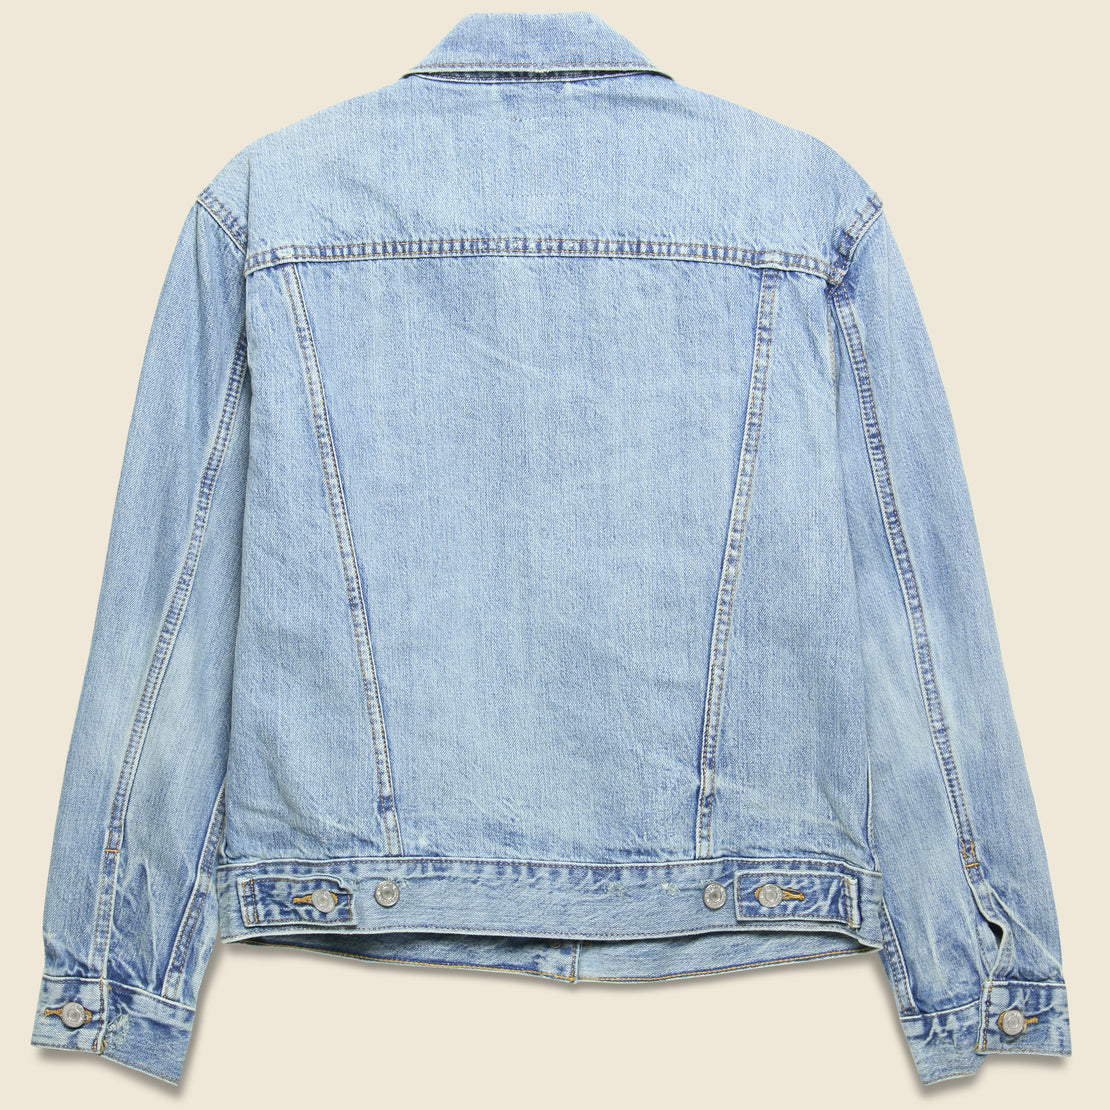 Ex-Boyfriend Trucker Jacket - Dream of Life